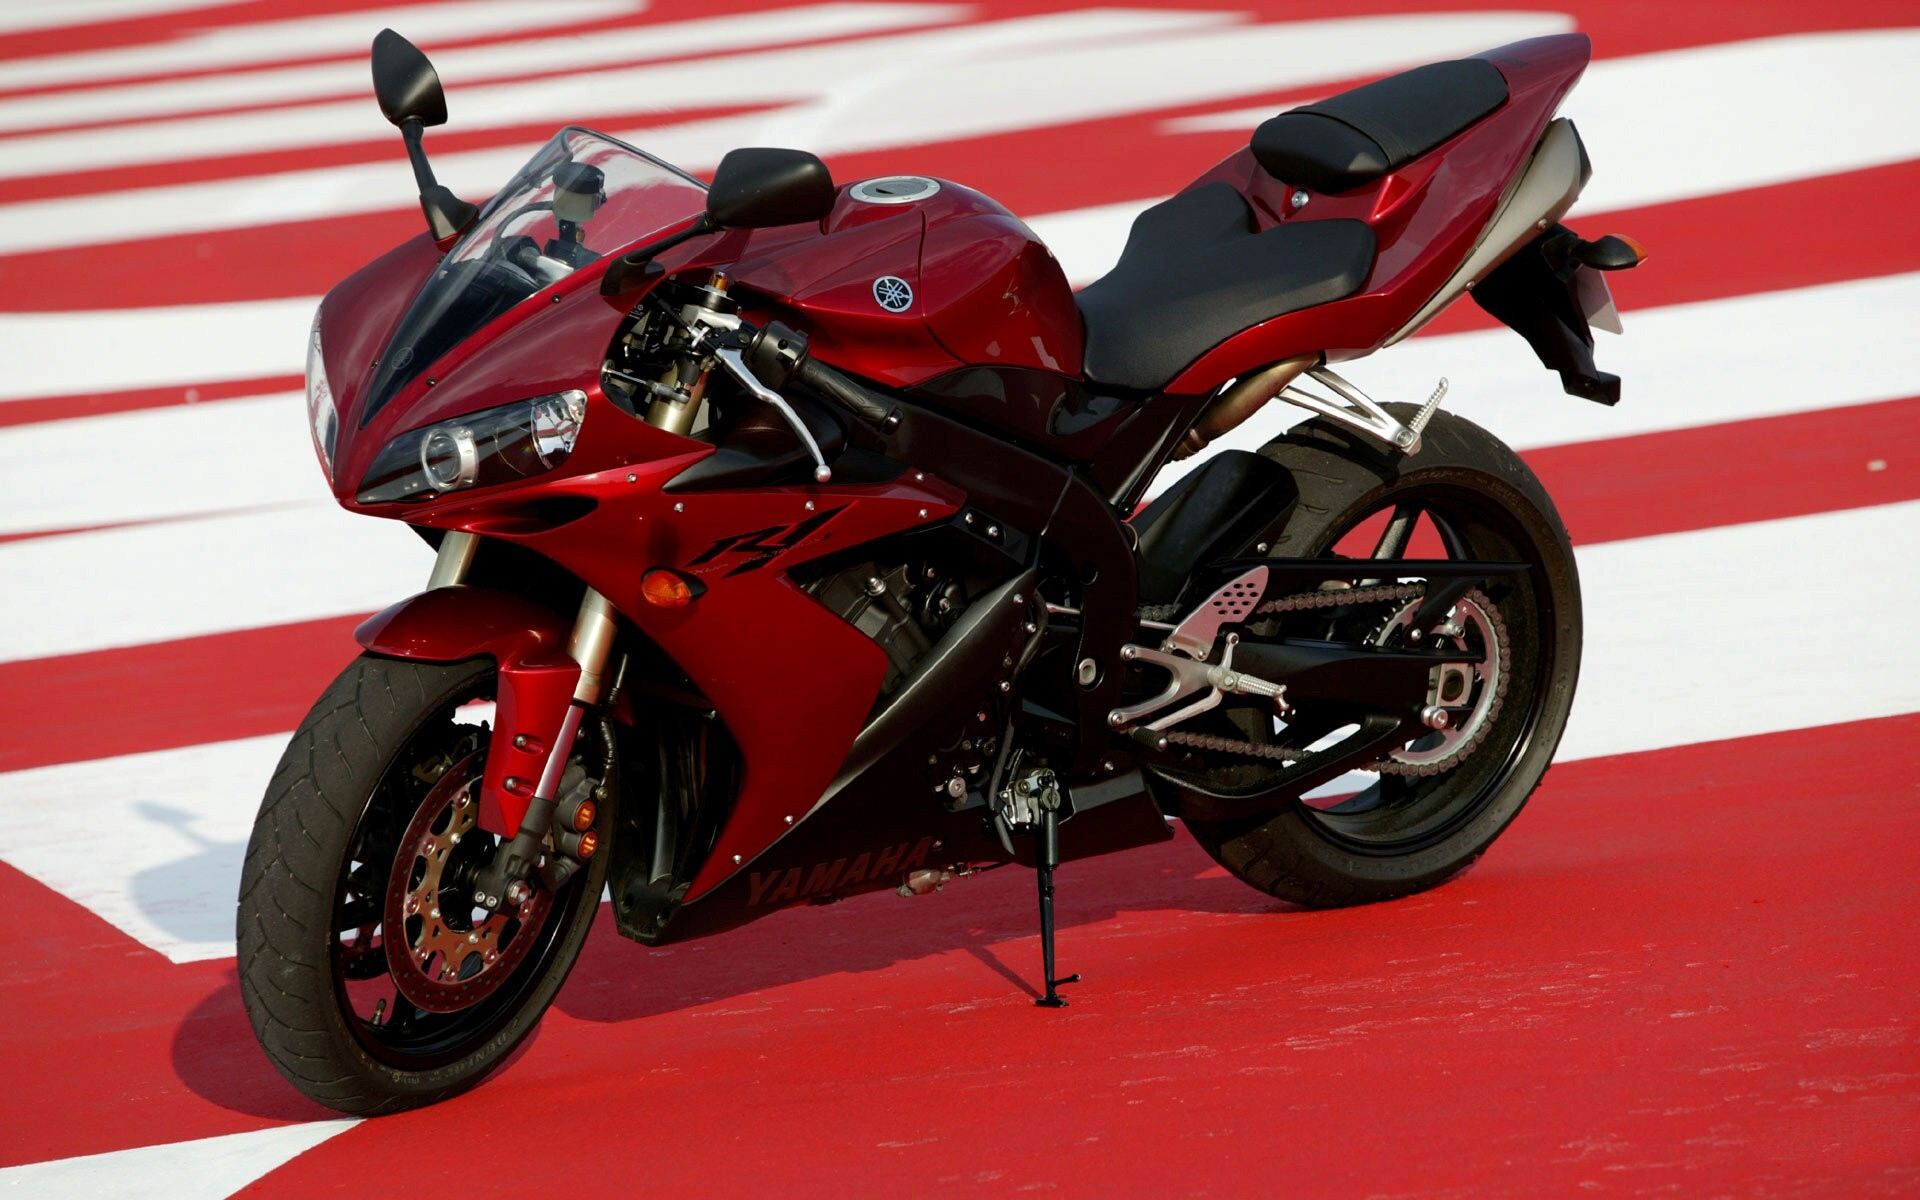 super yamaha r1 red bike hd wallpapers | hd wallpapers